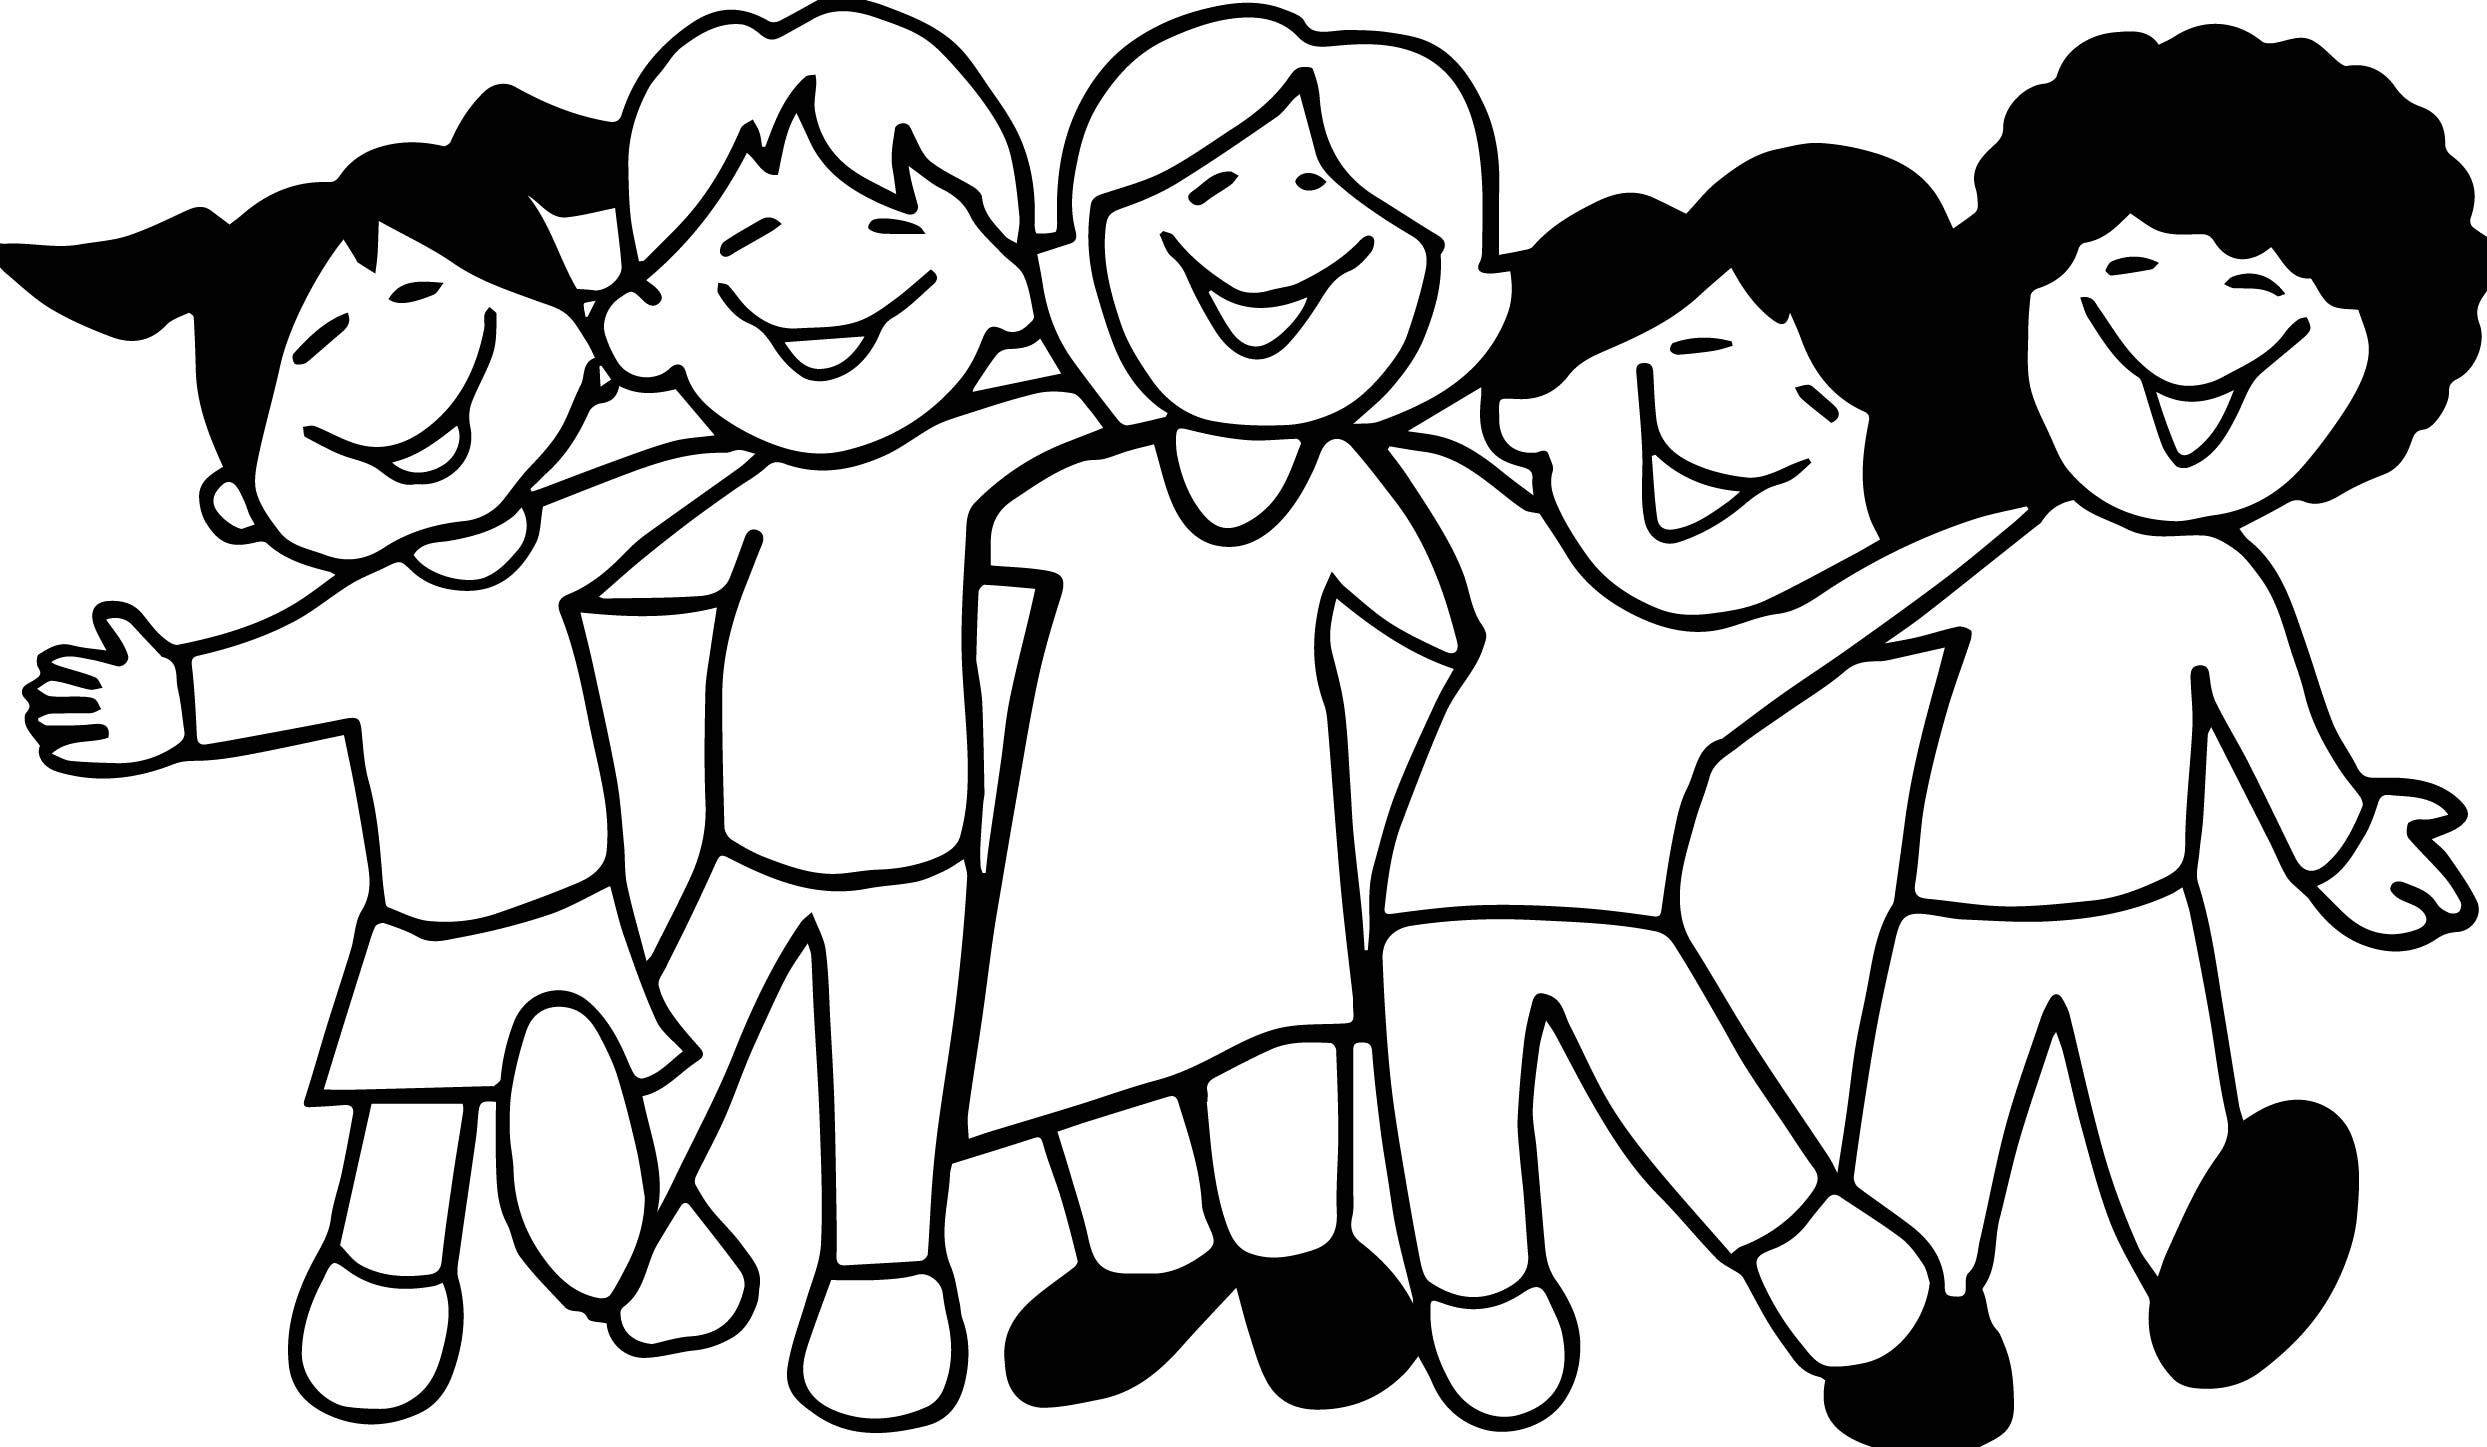 - Cool Five Kids Friendship Coloring Page (With Images) Nemo